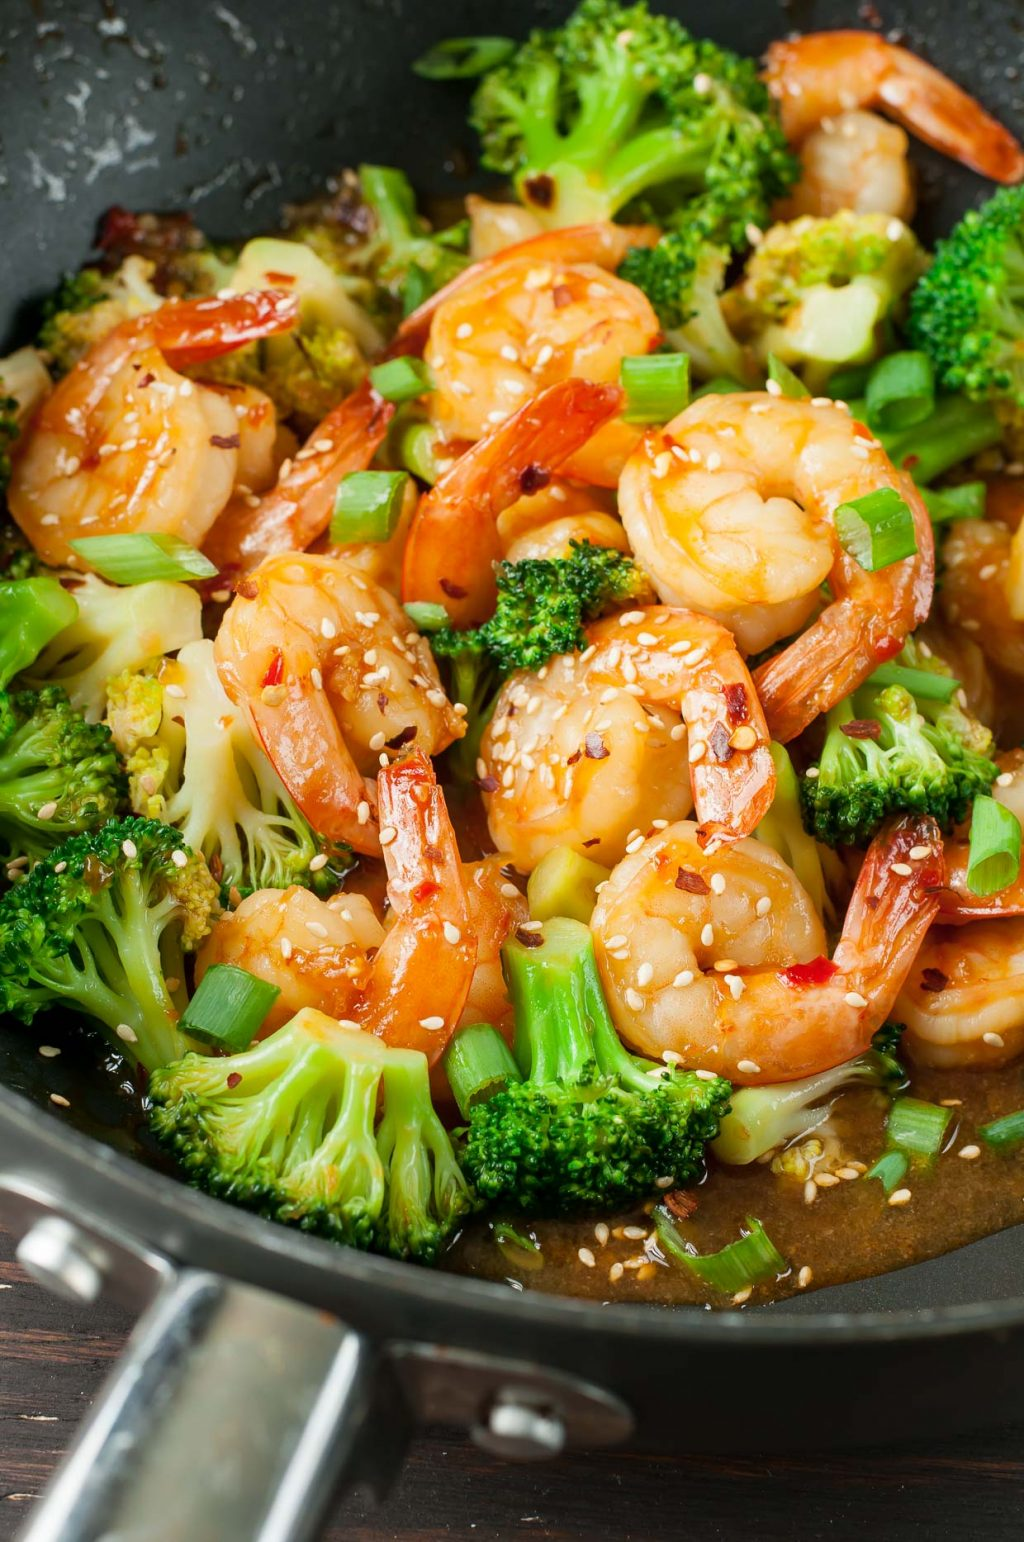 Recipe Roundup: Chinese Food Recipes